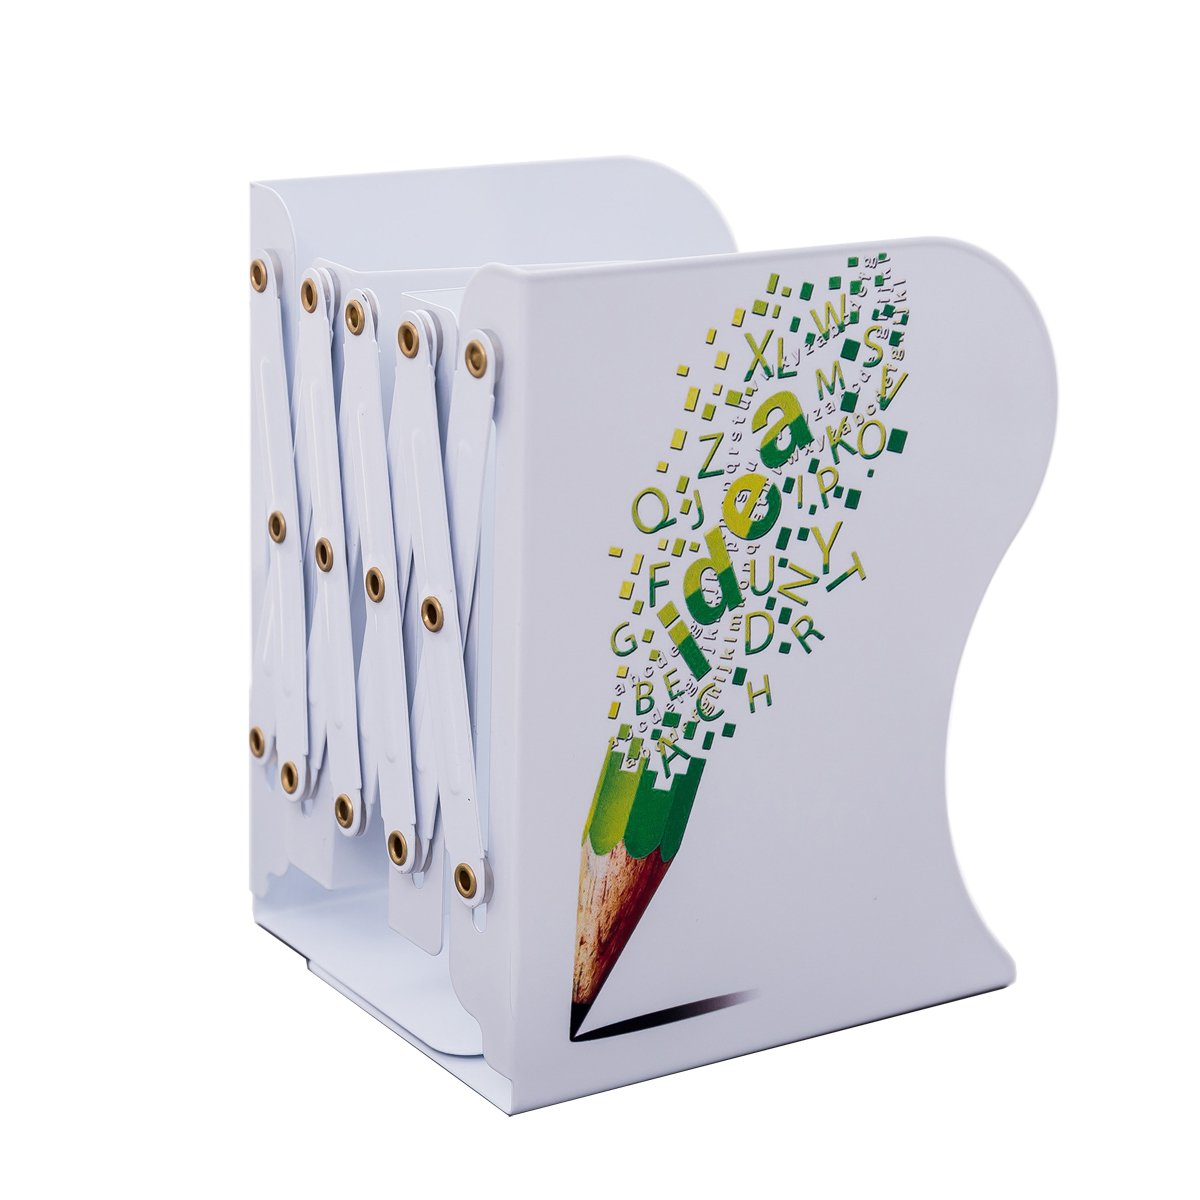 JIARI Funny Pencil Pattern Decorative Bookends Metal Heavy Duty Adjustable Bookend Book Holder Stable Book Stand Office Desk Shelf (style3)